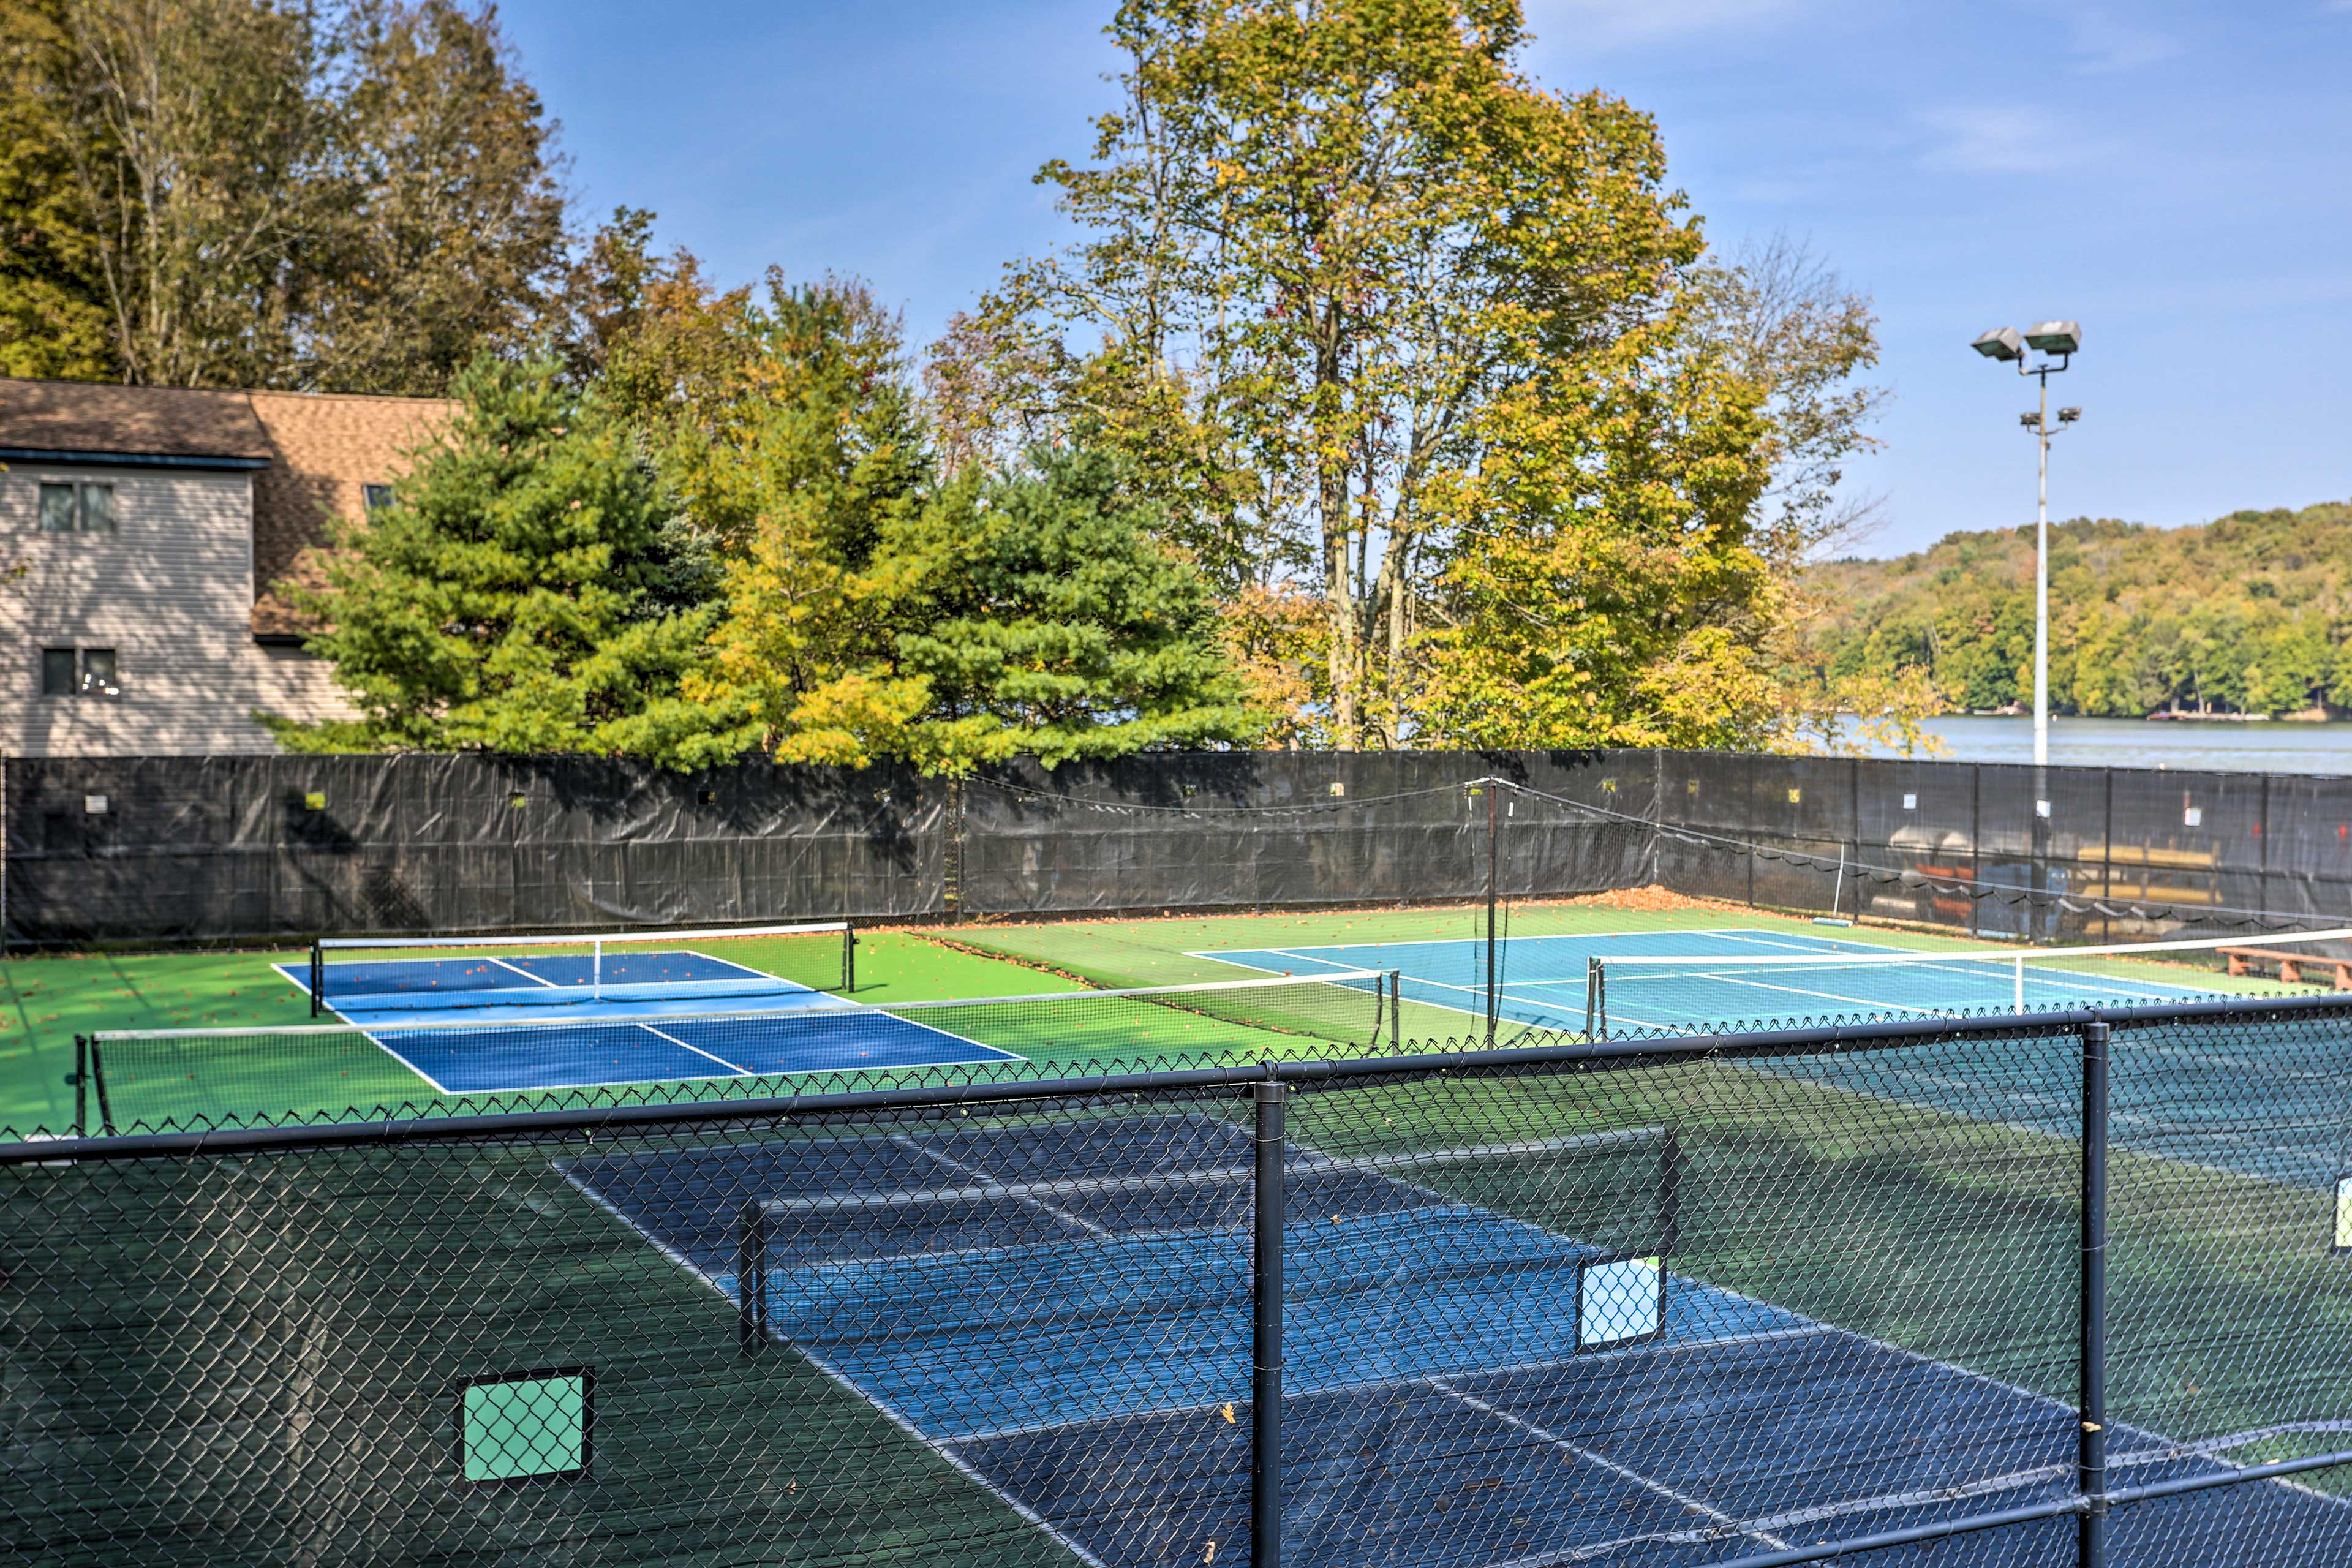 Challenge your next competitor to a match of tennis on the courts.